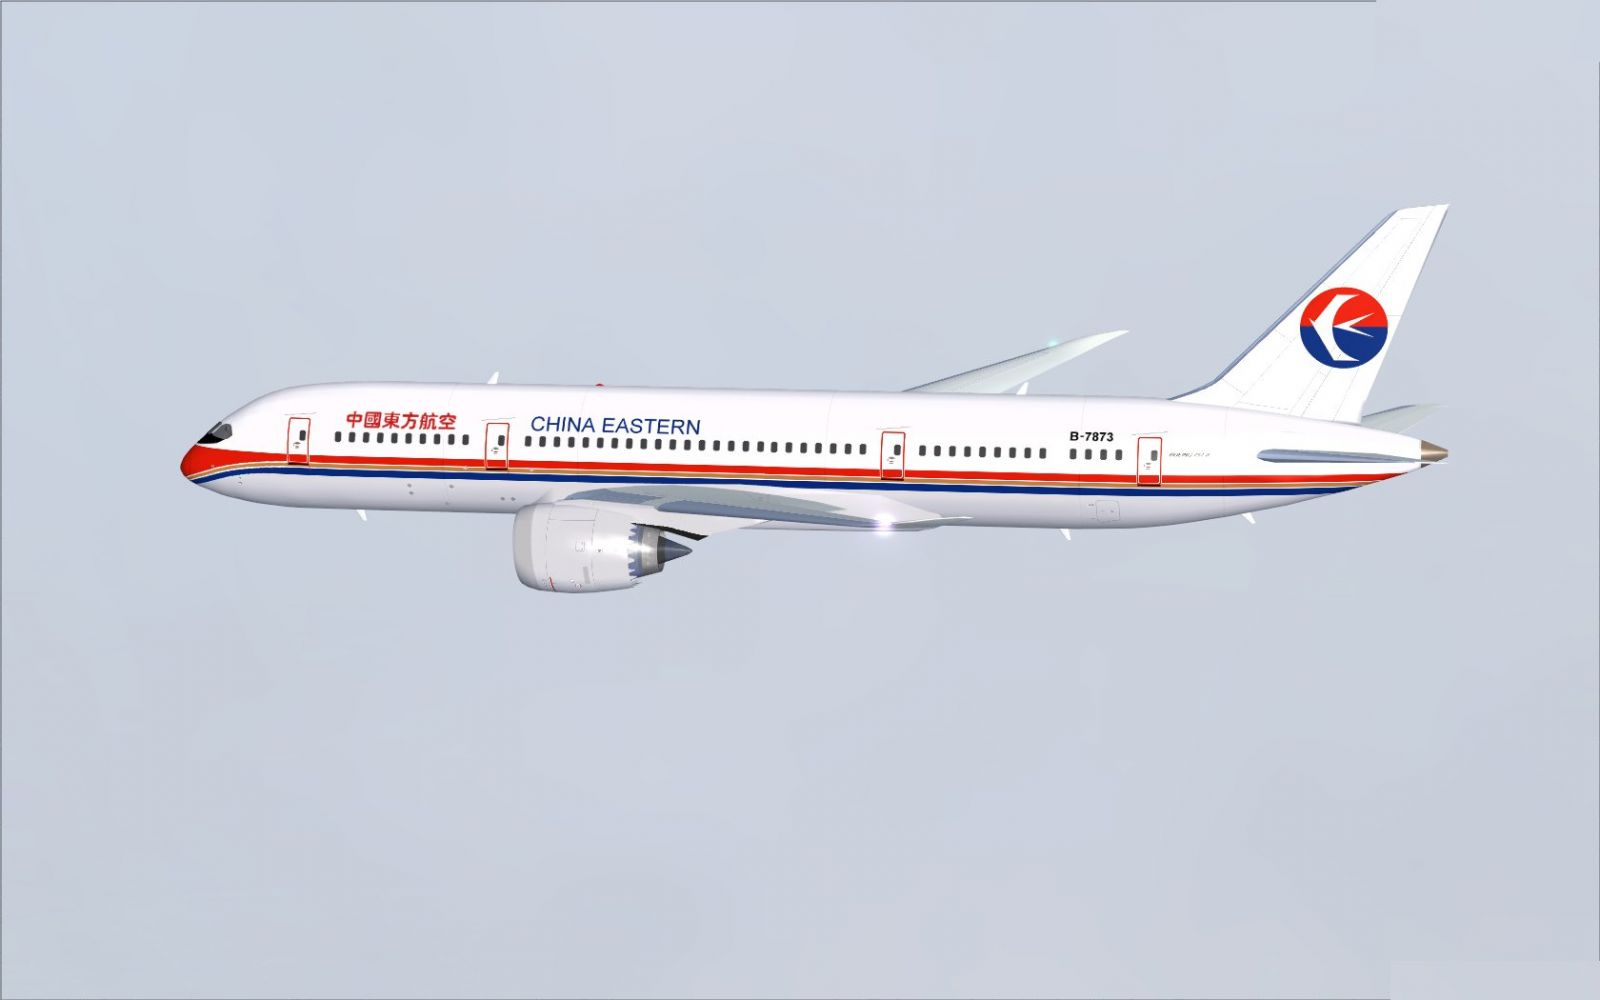 China Eastern Airlines finalizes order for 15 Boeing 787-9